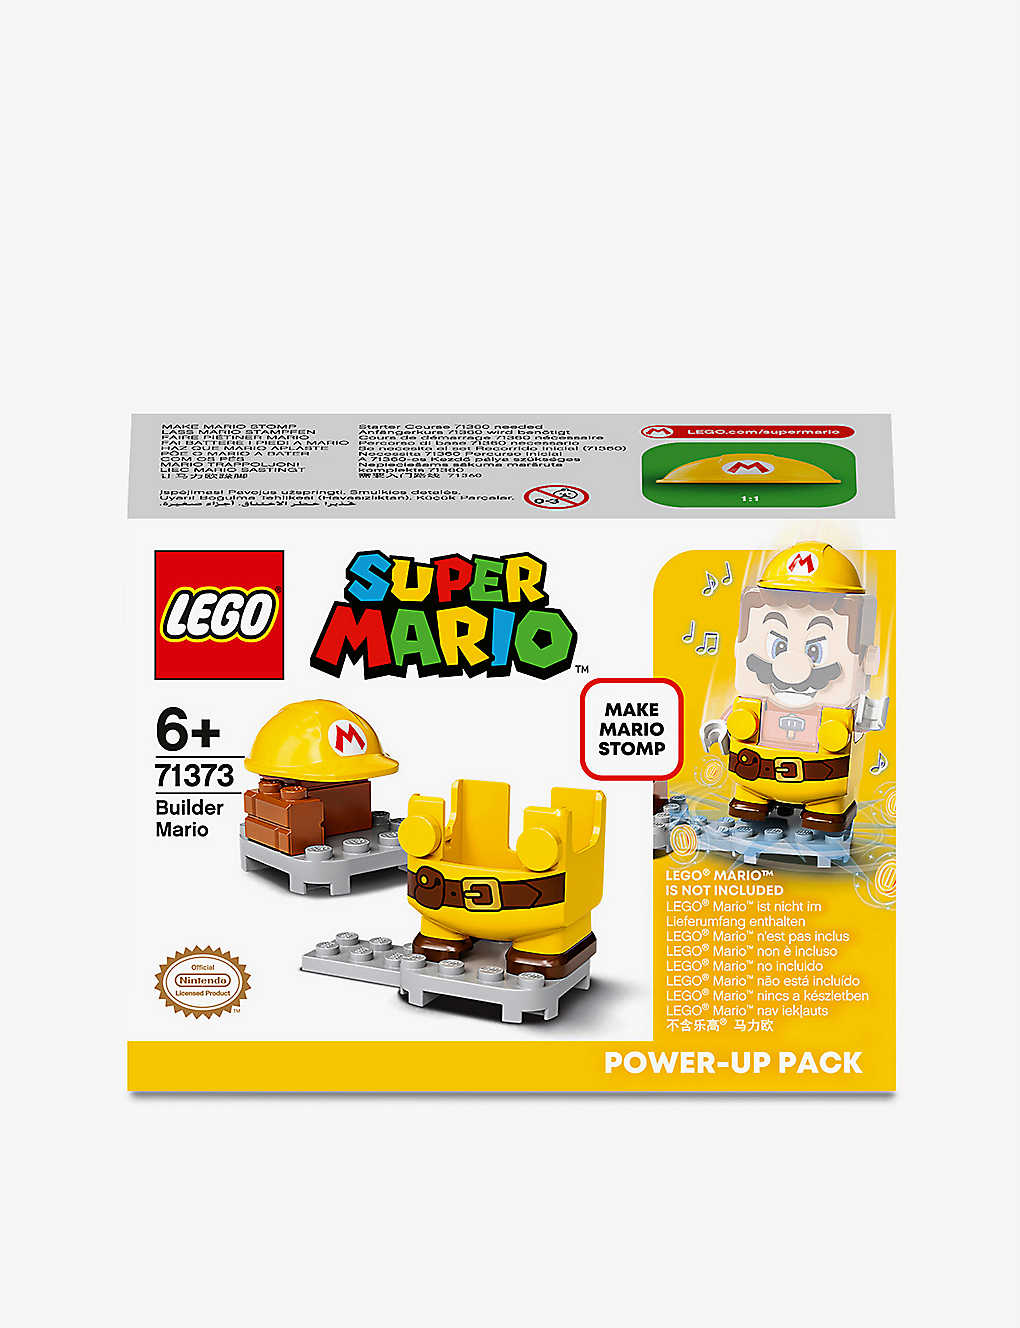 LEGO: LEGO® Super Mario™ Builder Mario power-up pack